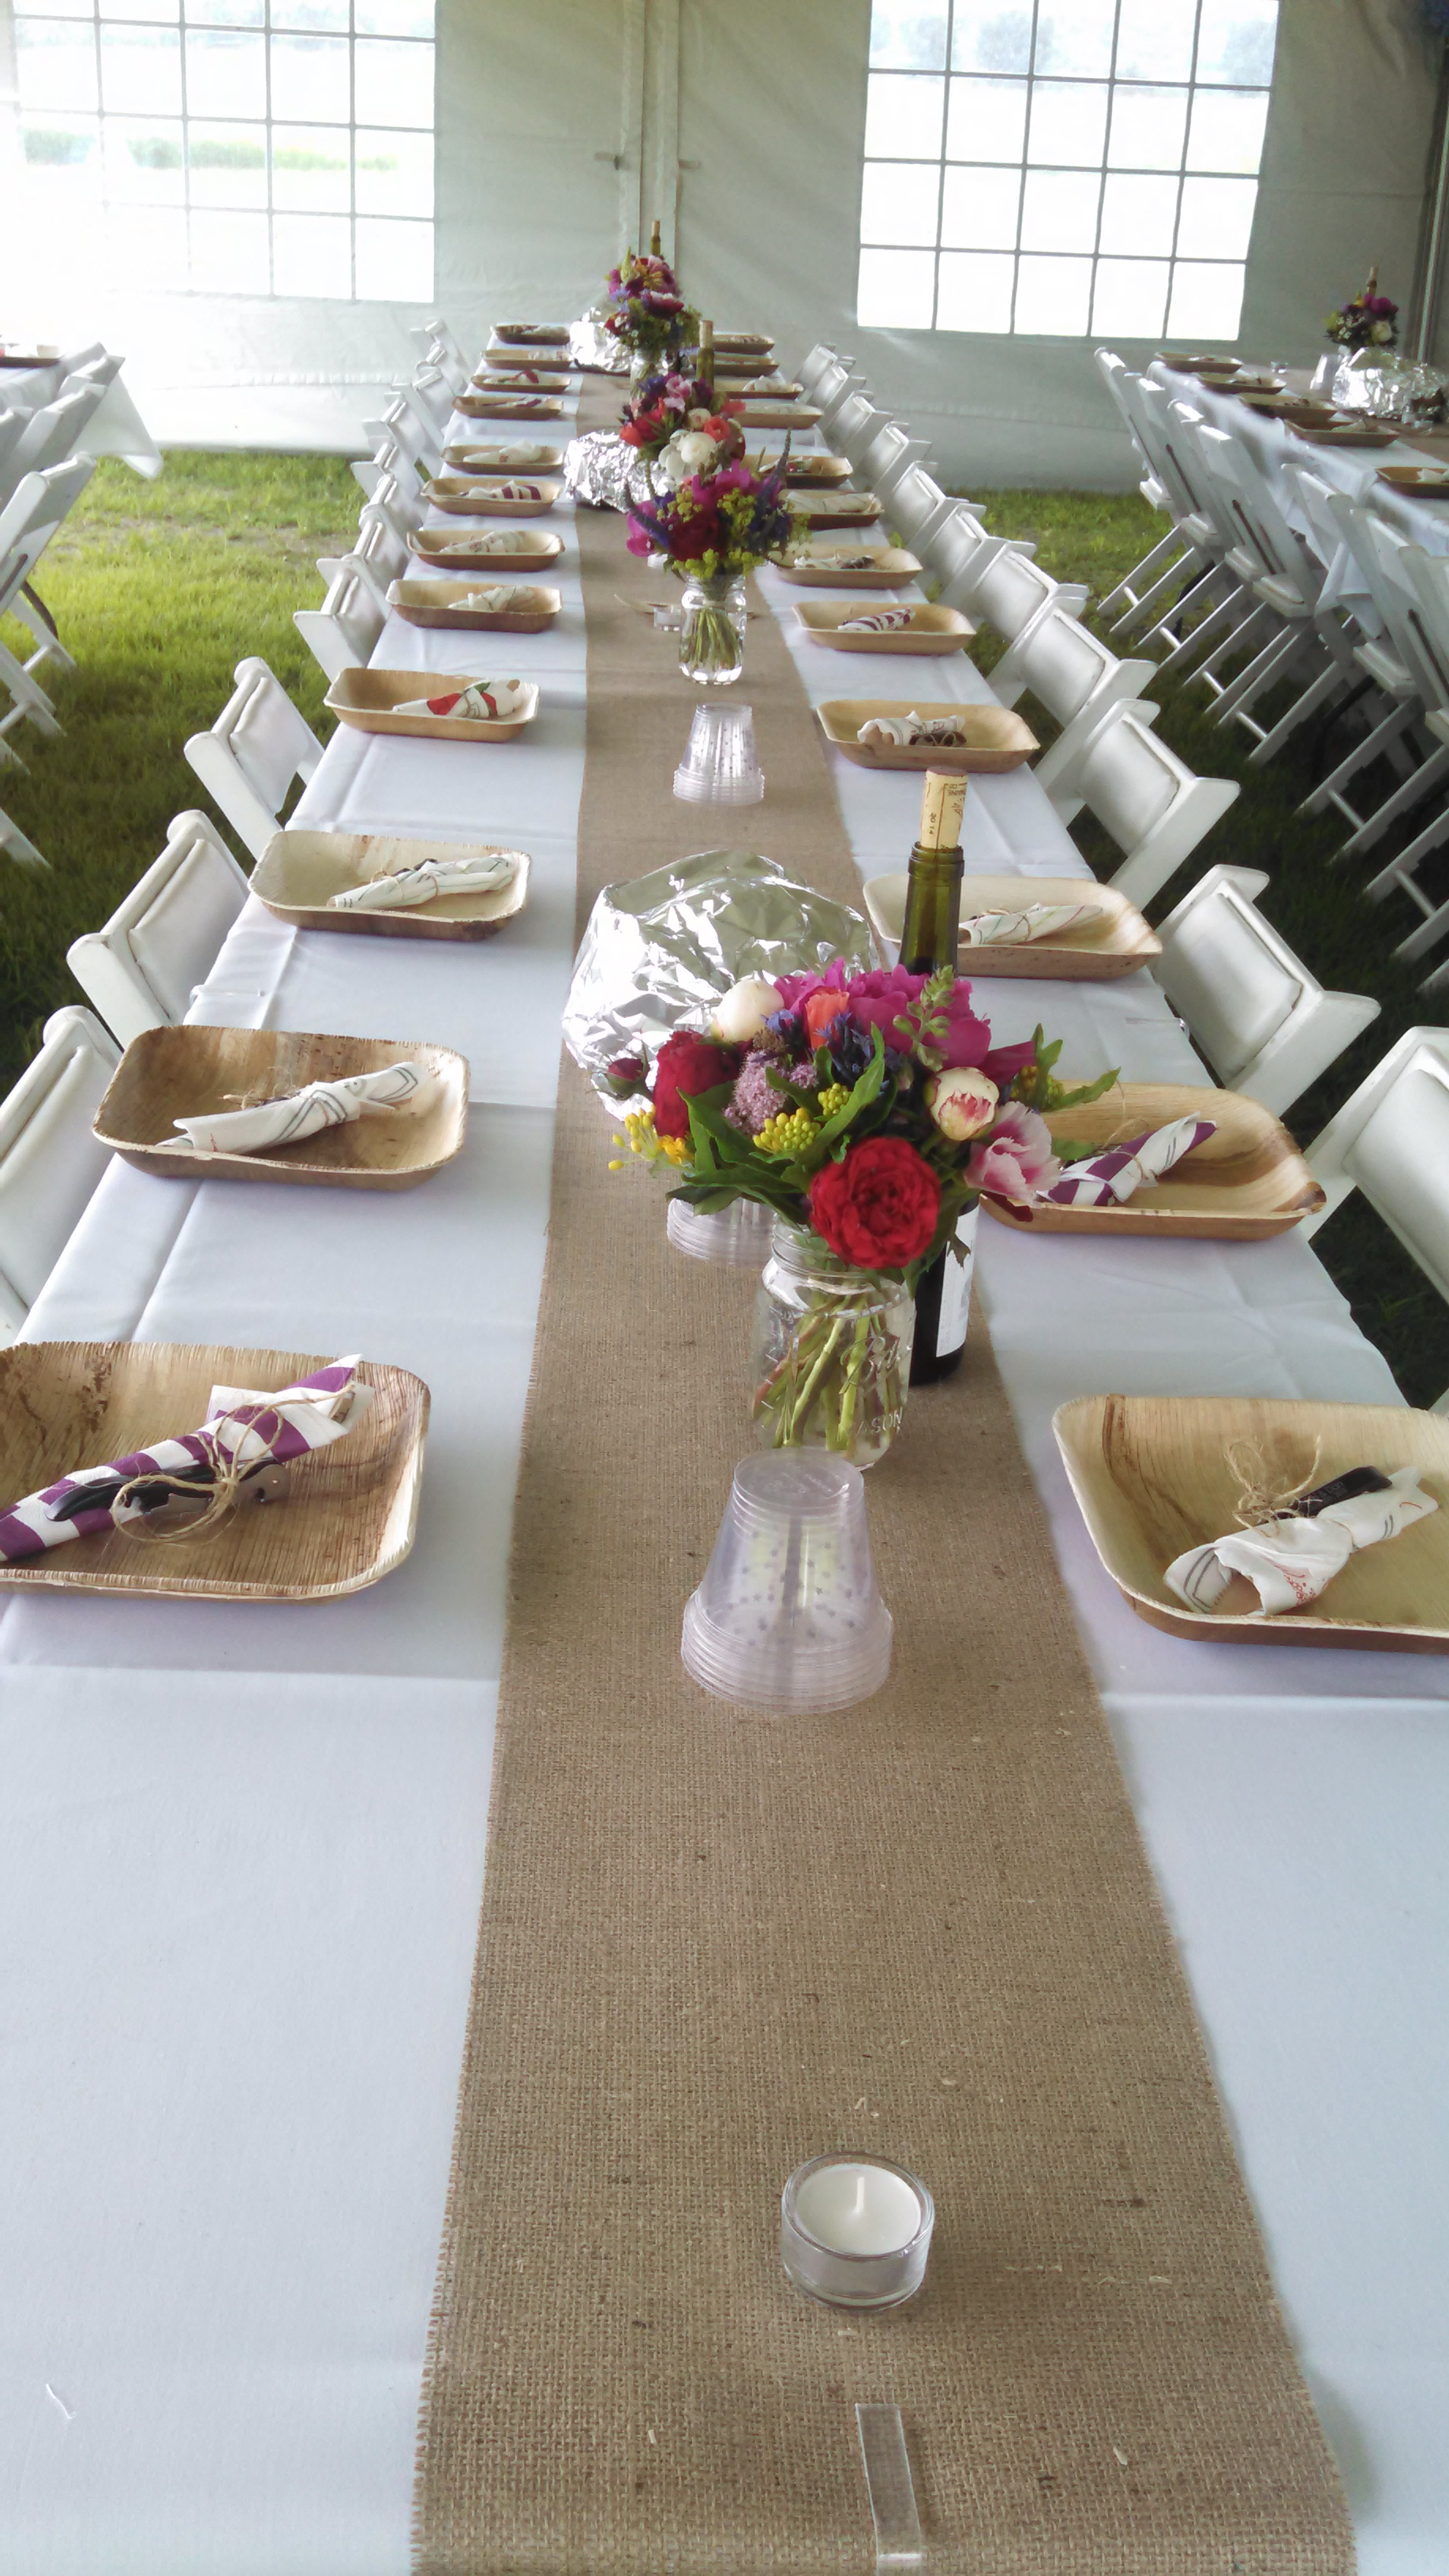 Dining table wcompostables